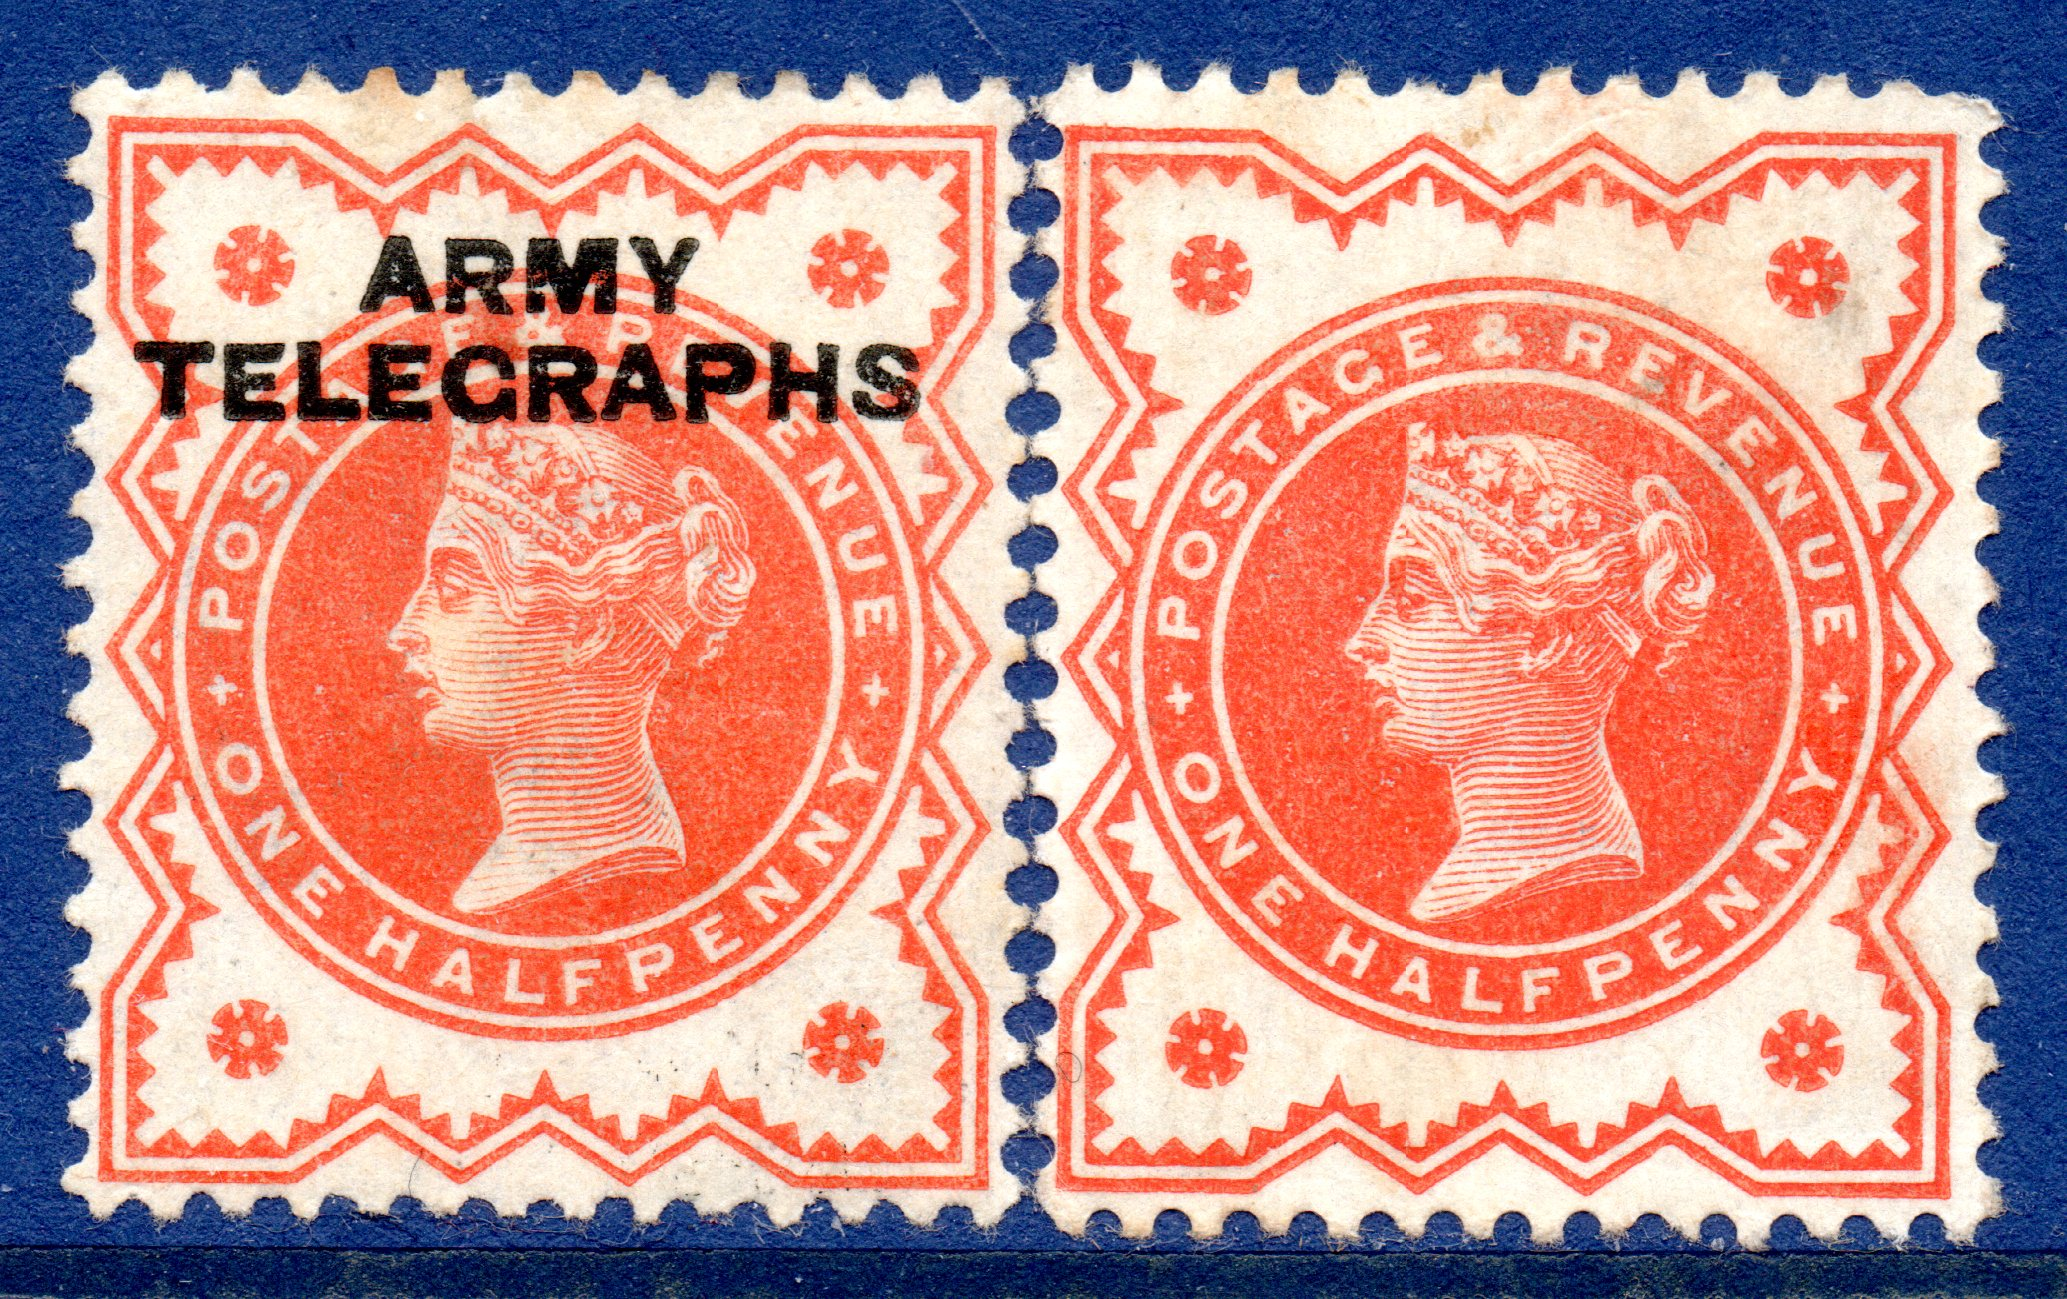 1895 ½d Vermilion ARMY TELEGRAPHS Mounted Mint c/w Ordinary ½d Vermilion MM